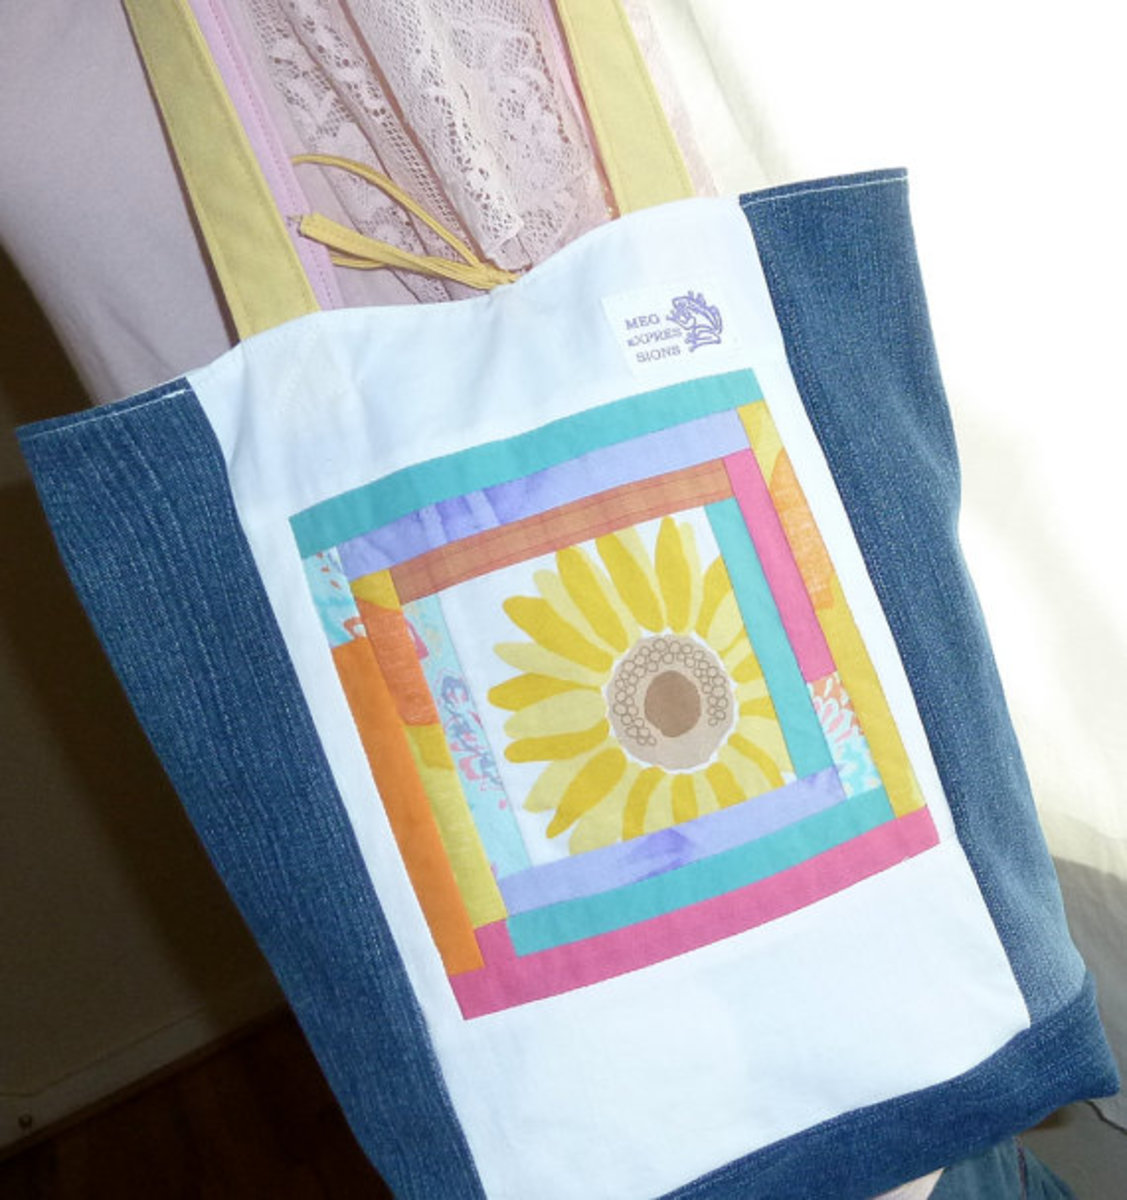 Upcycled Tote, made from recycled jean material